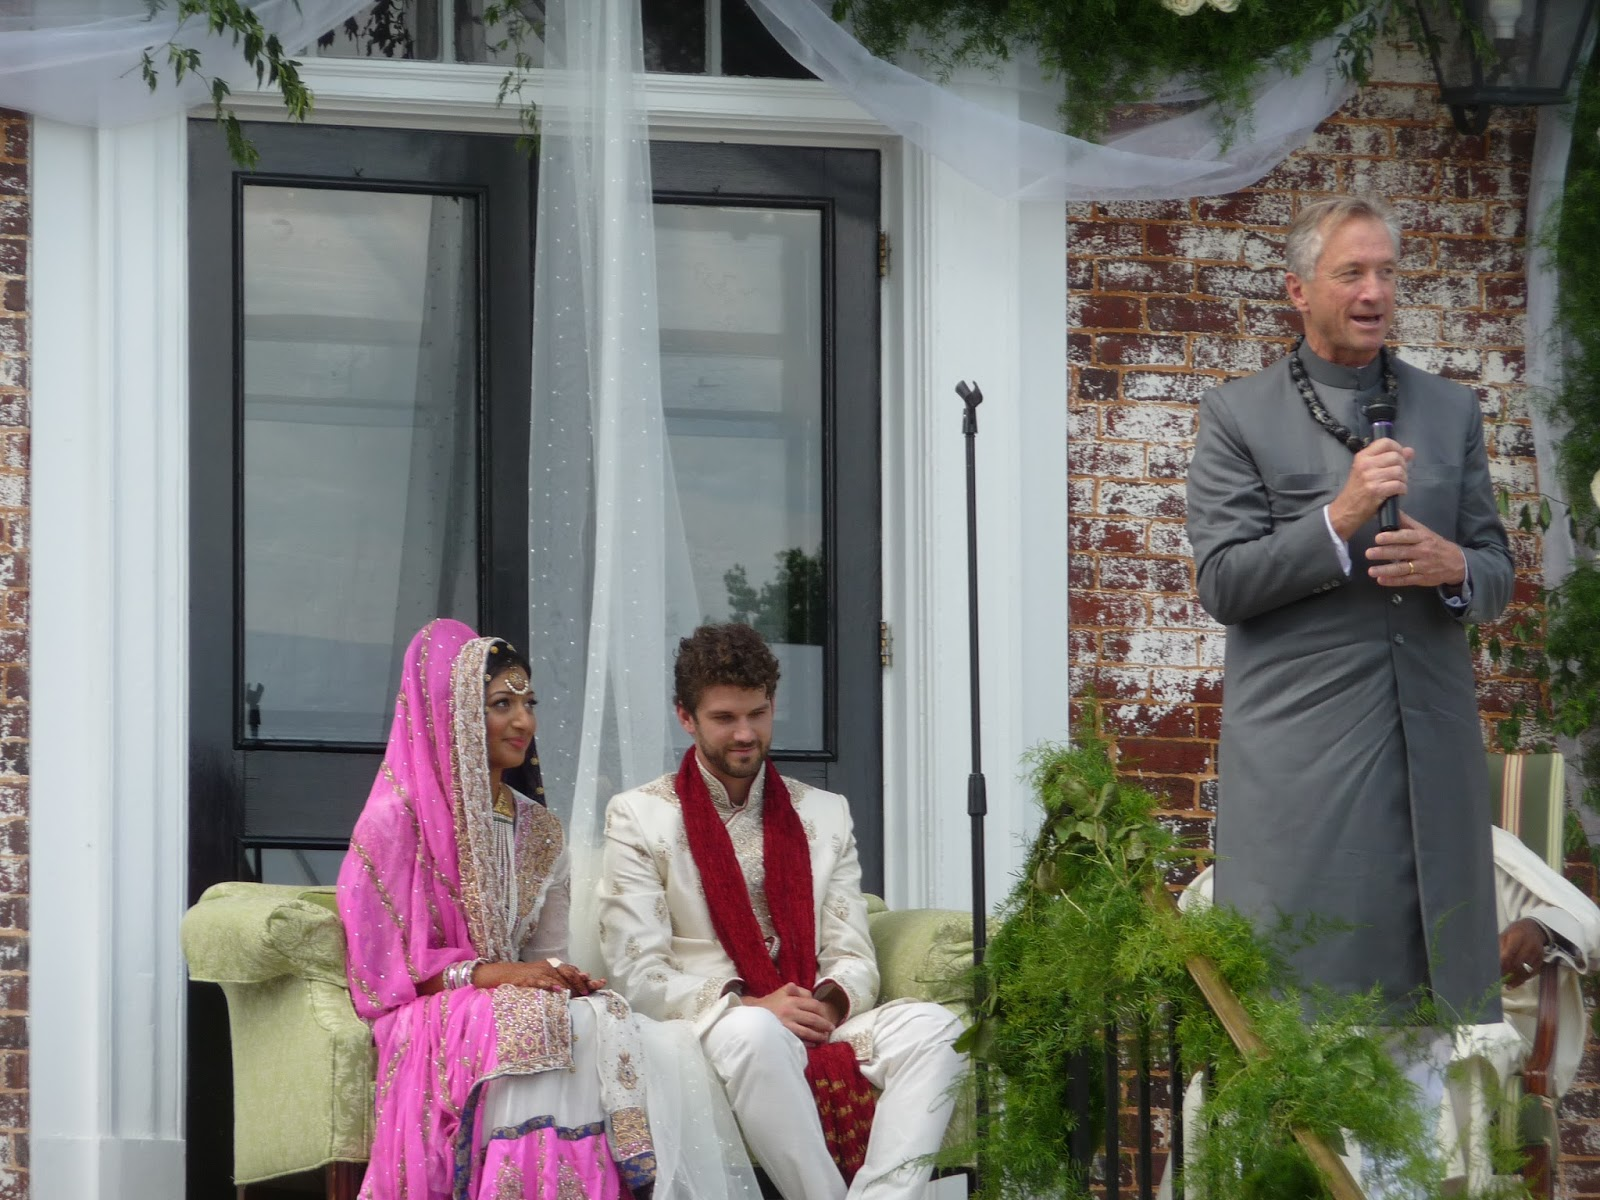 Povey Prattle The Background The Couple My Friends The Wedding Ceremony The Shaykh The Priest